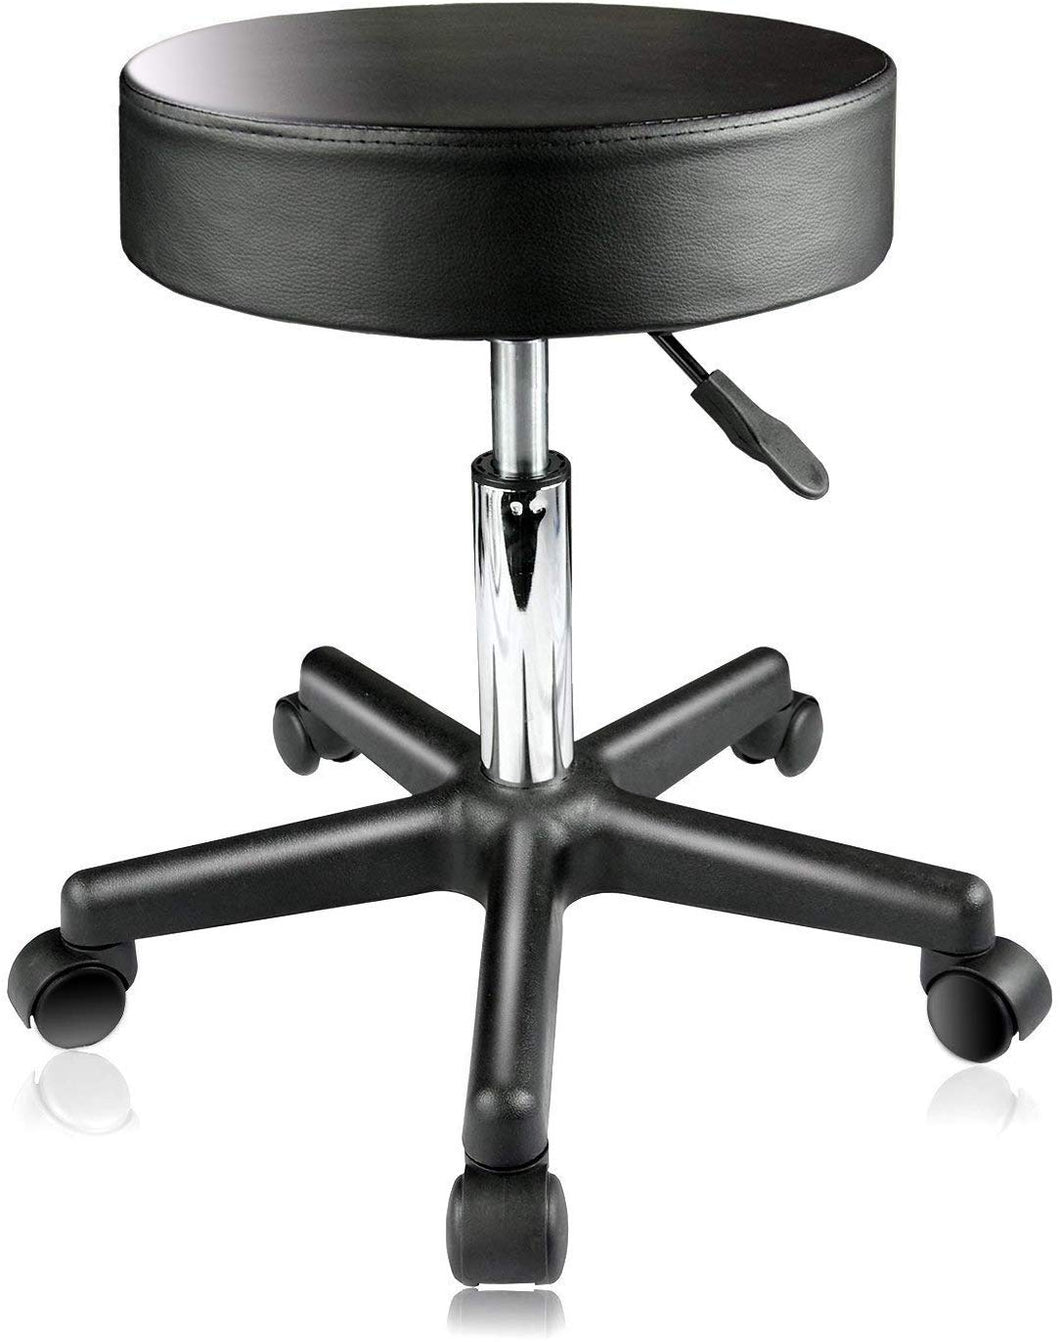 PARTYSAVING Supportive Adjustable Hydraulic Rolling Swivel Stool for Massage and Salon Office Facial Spa Medical Tatoo Chair Cushion & Wheels – Extra Large, SRE1311